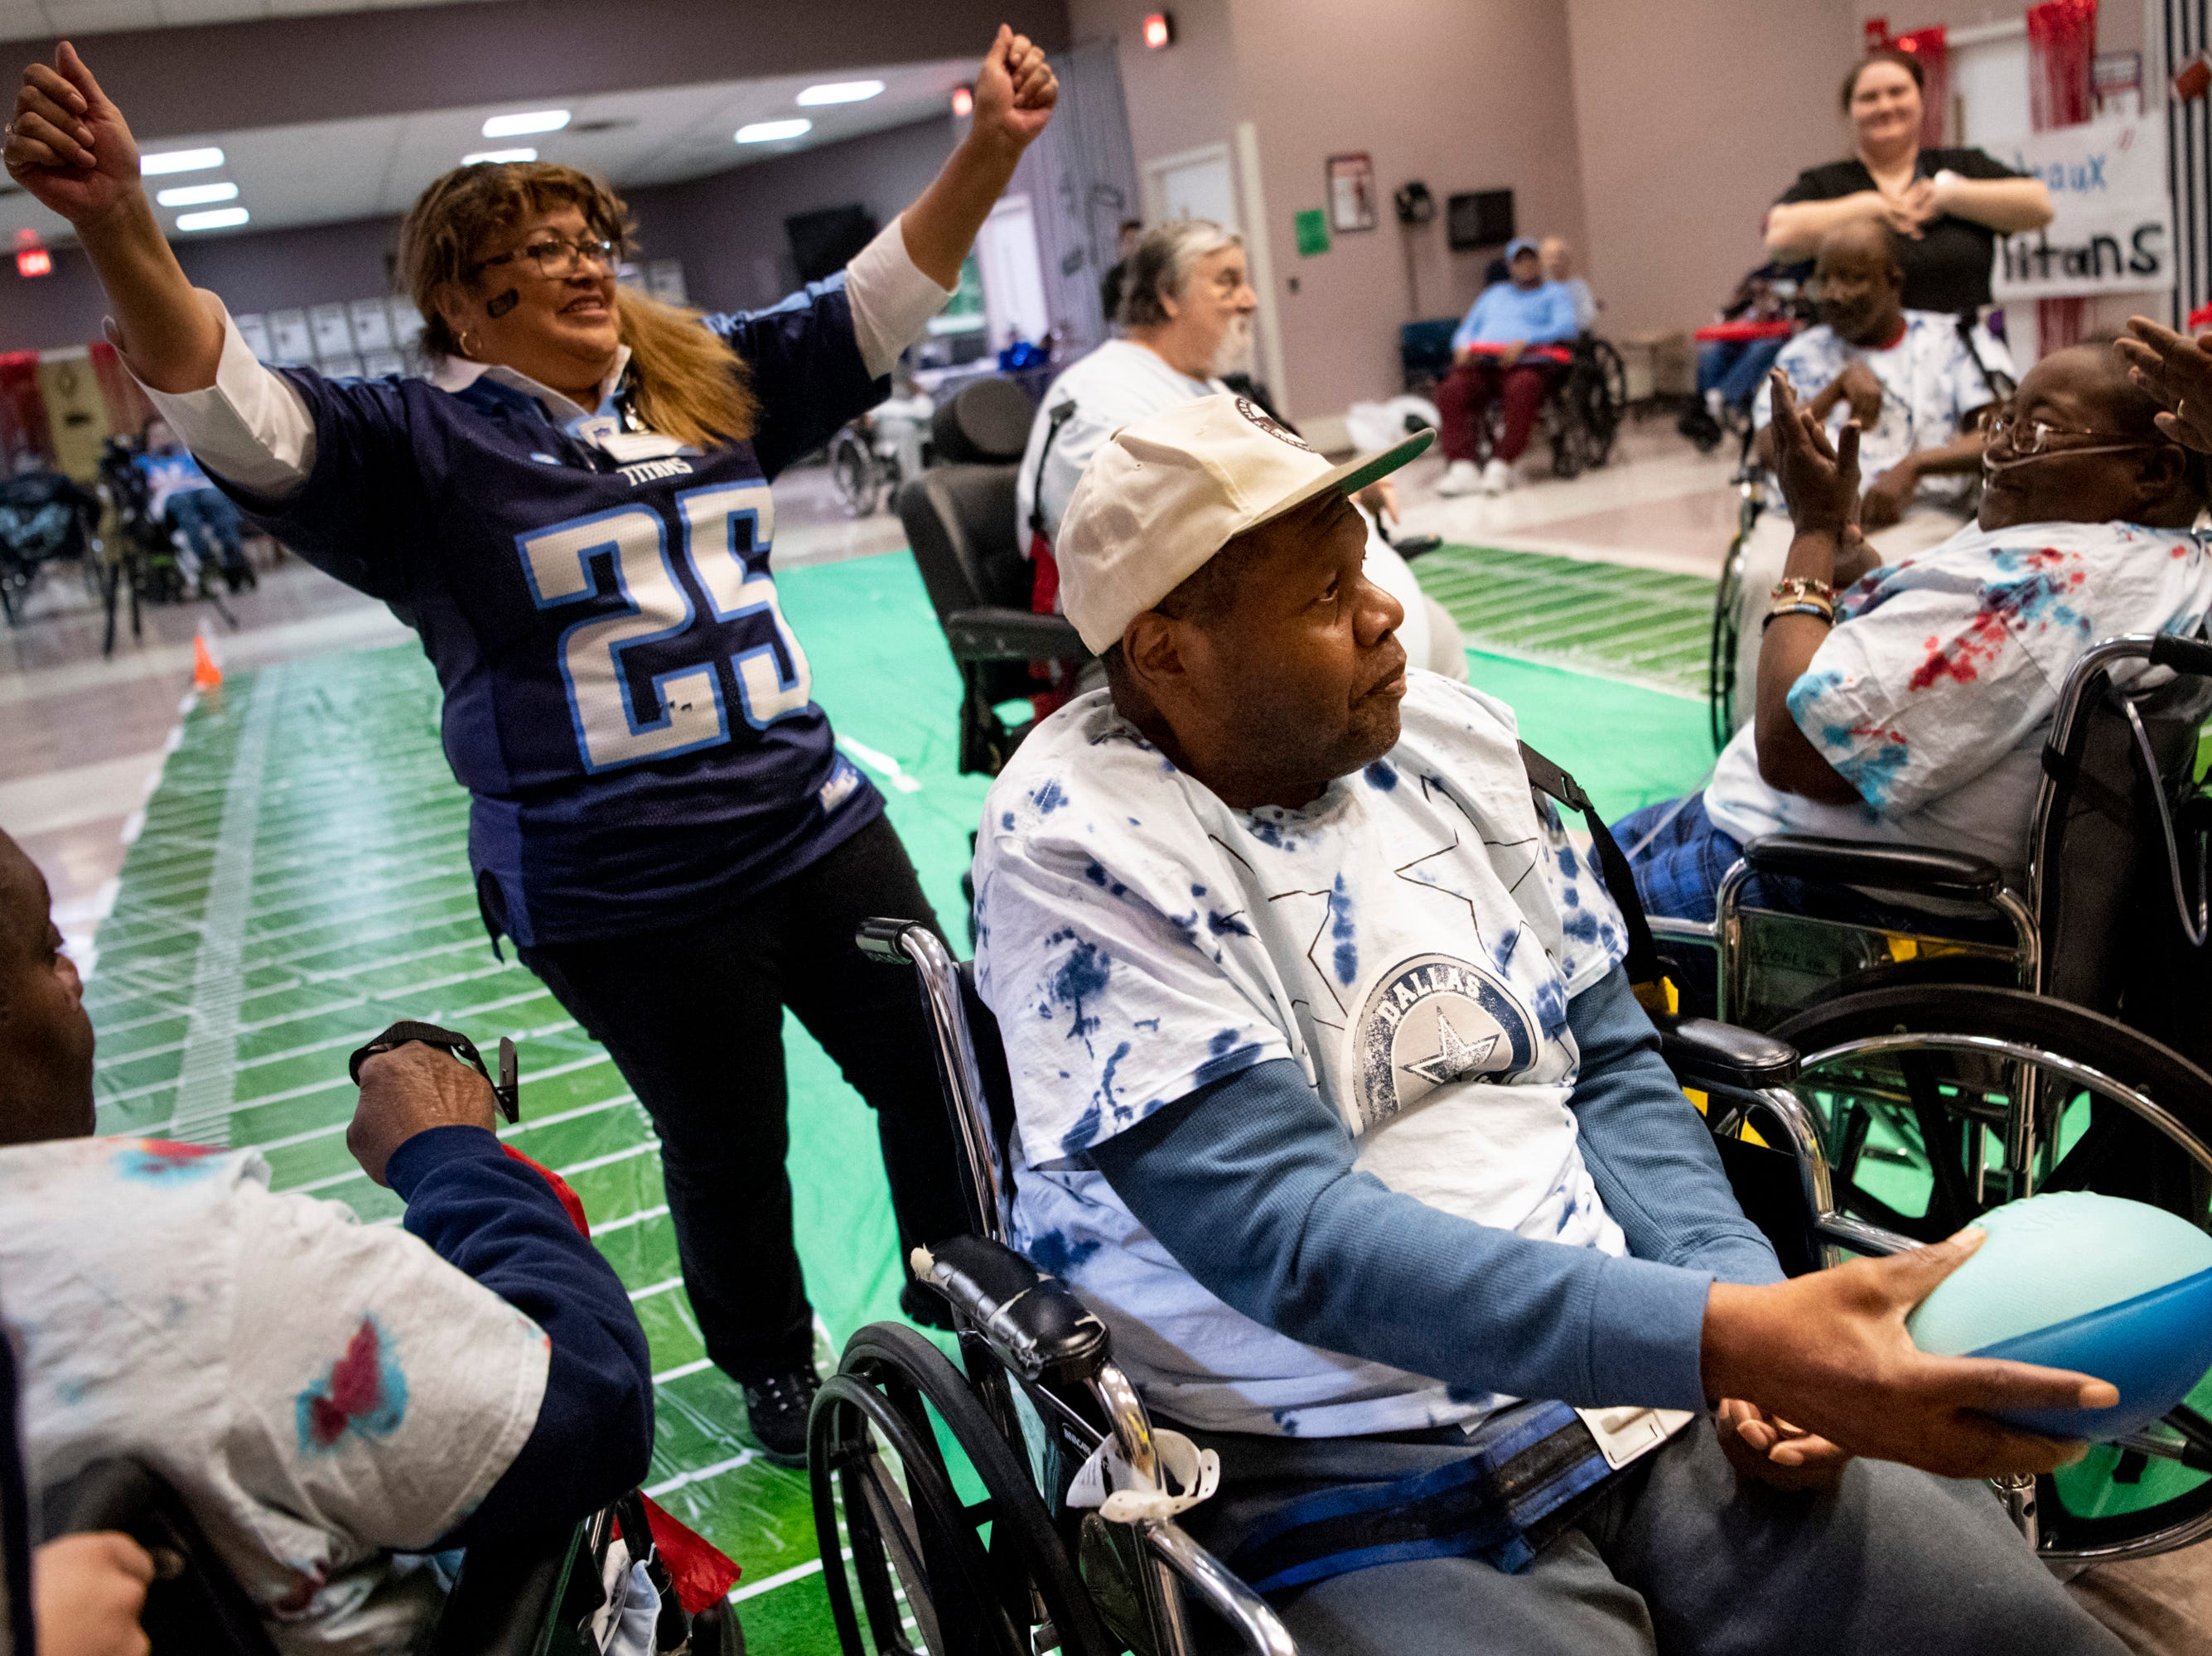 Nevel Blakemore scores a touchdown during the Wheelchair Super Bowl at Nashville Community Care and Rehabilitation at Bordeaux in Nashville, Tenn., Friday, Feb. 1, 2019.